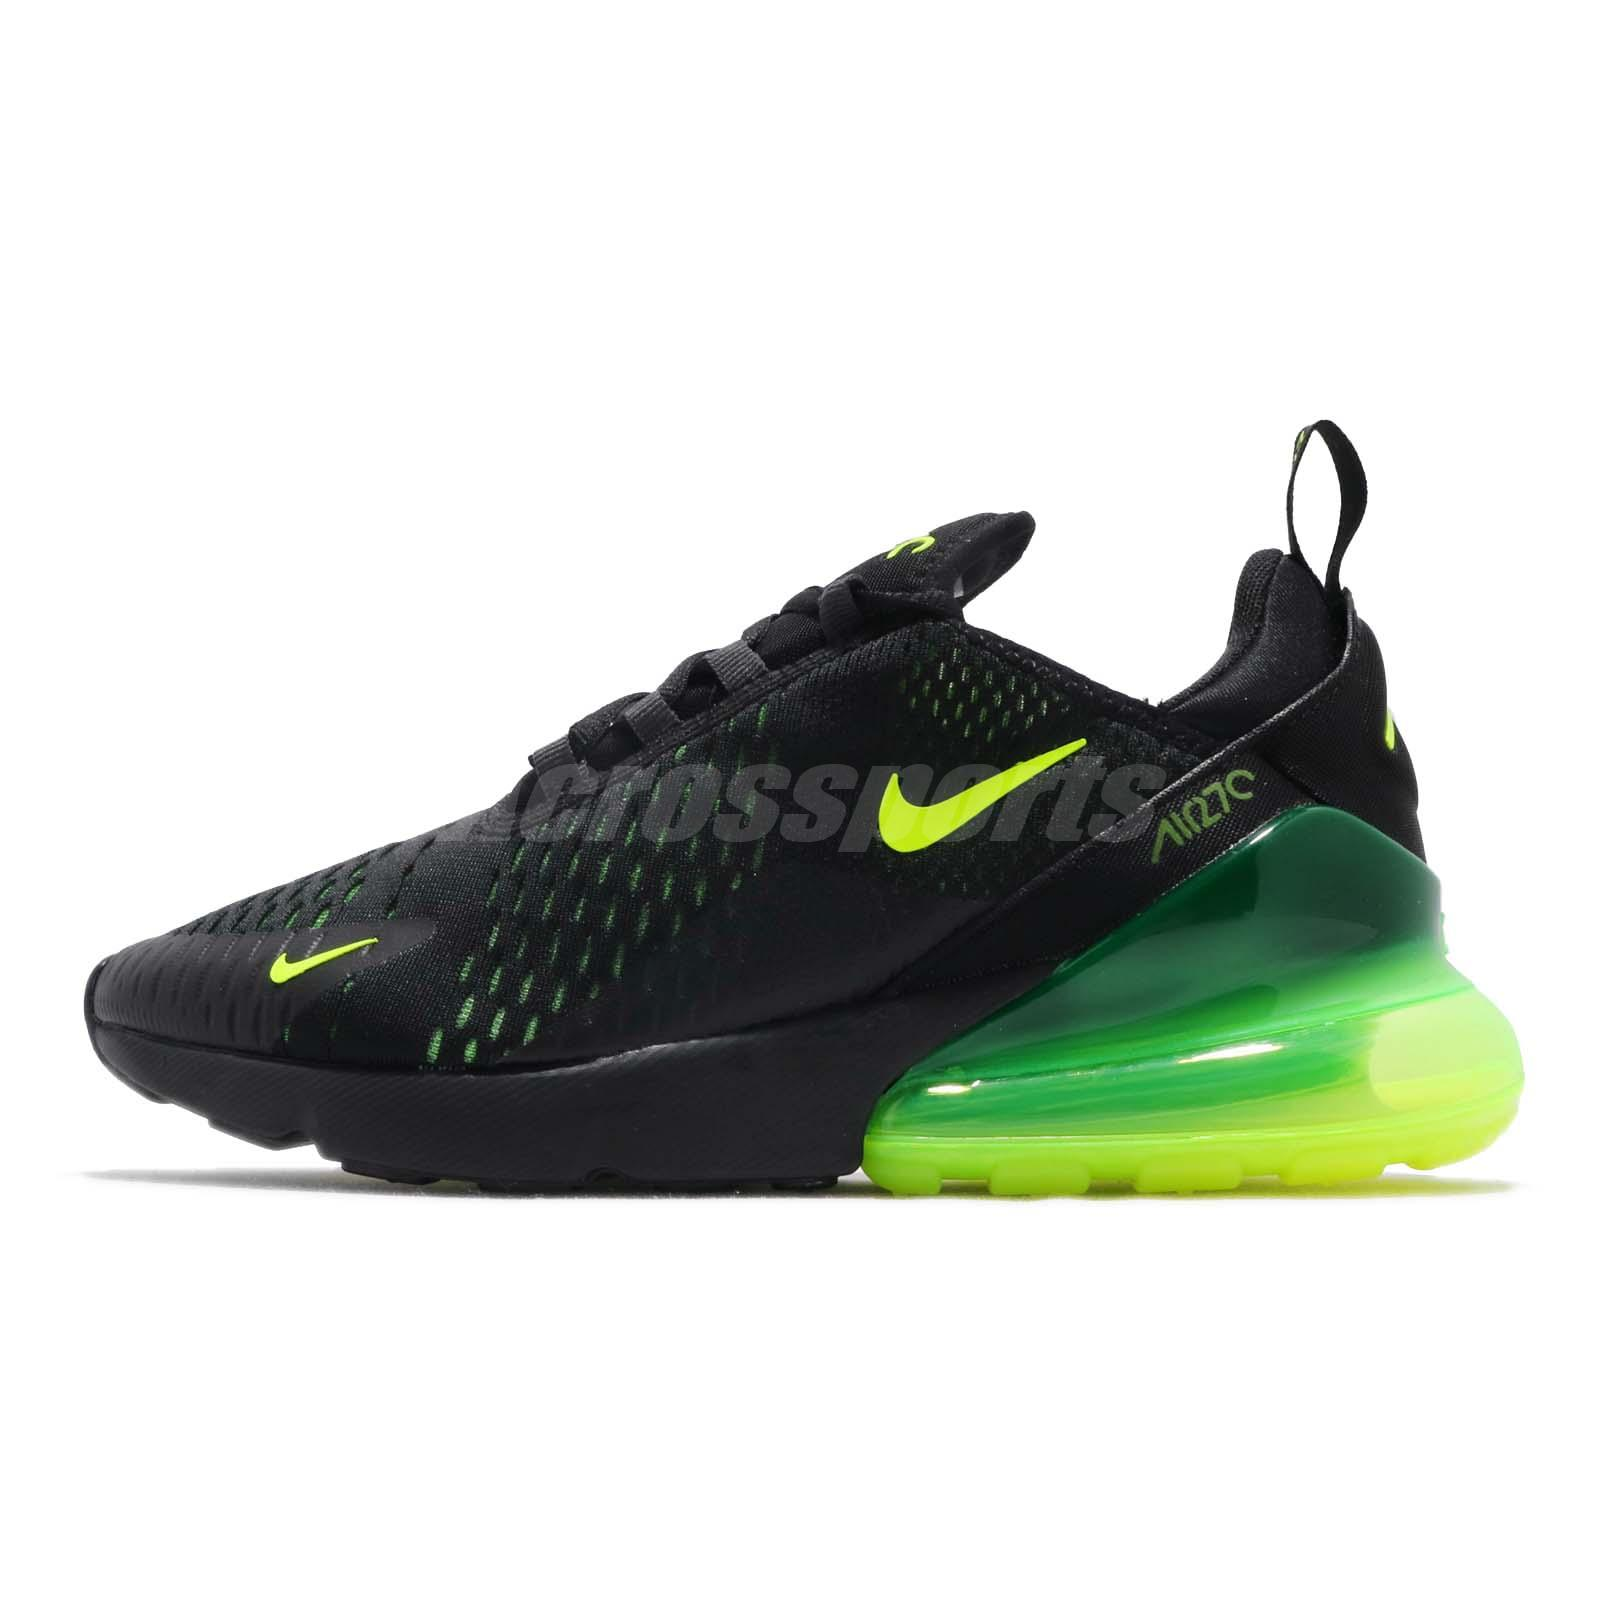 Details about Nike Air Max 270 Black Volt Grey Men Running Casual Shoes Sneakers AH8050 017